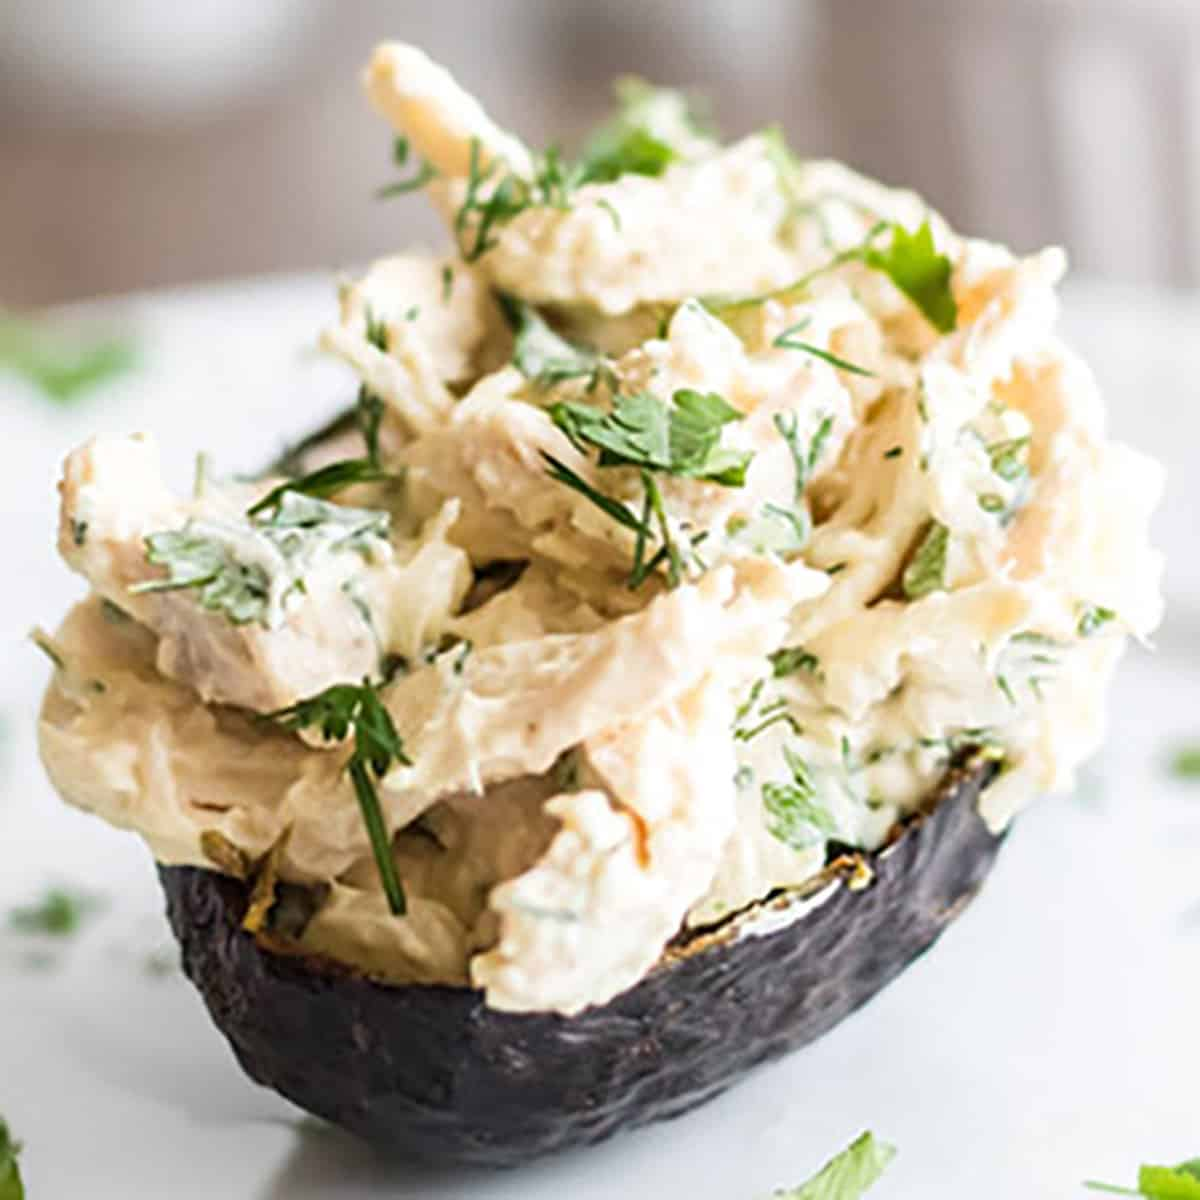 An avocado stuffed with chicken salad.